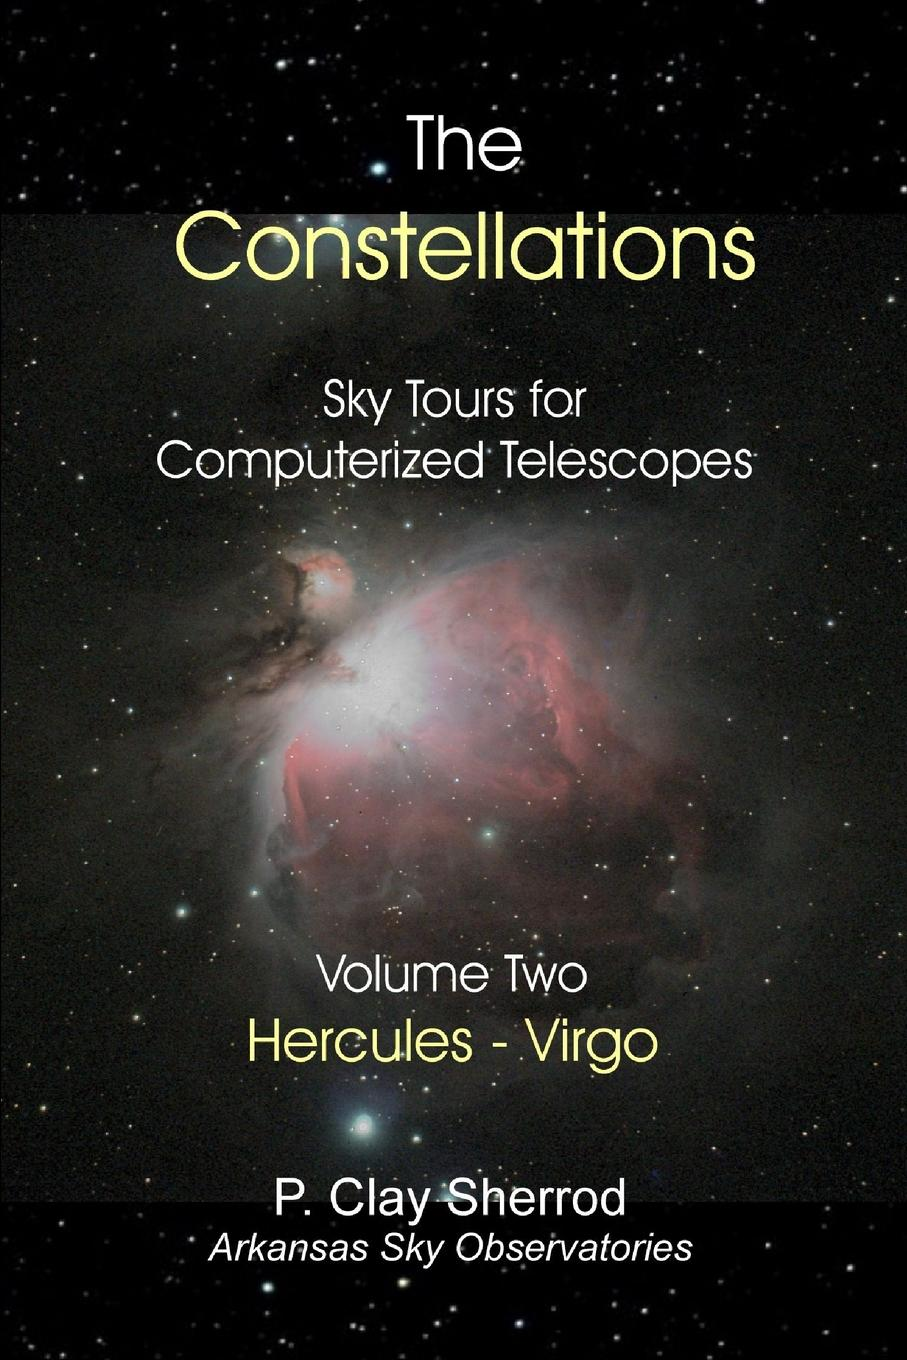 Clay Sherrod The Constellations - Sky Tours for Computerized Telescopes Vol. Two